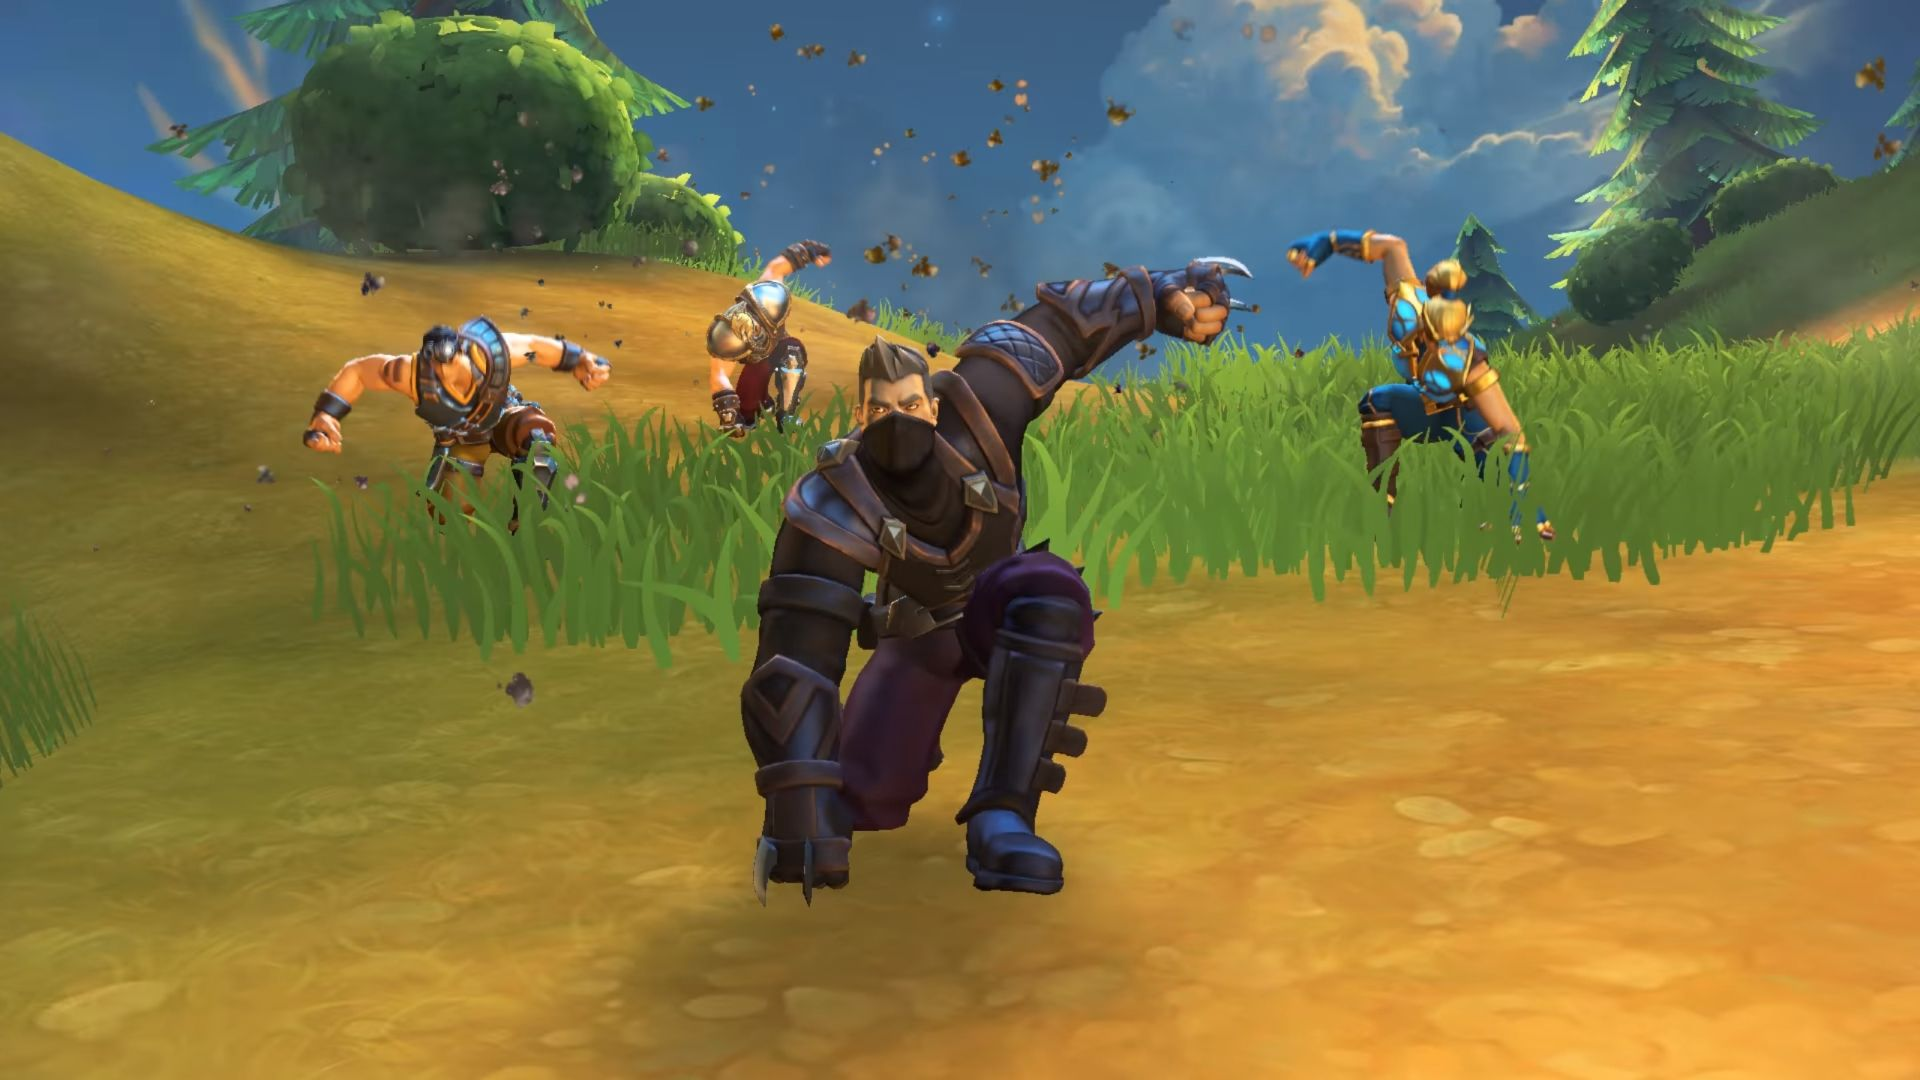 Paladins Battle Royale Spin-Off 'Realm Royale' Has Lost 95% Of Its